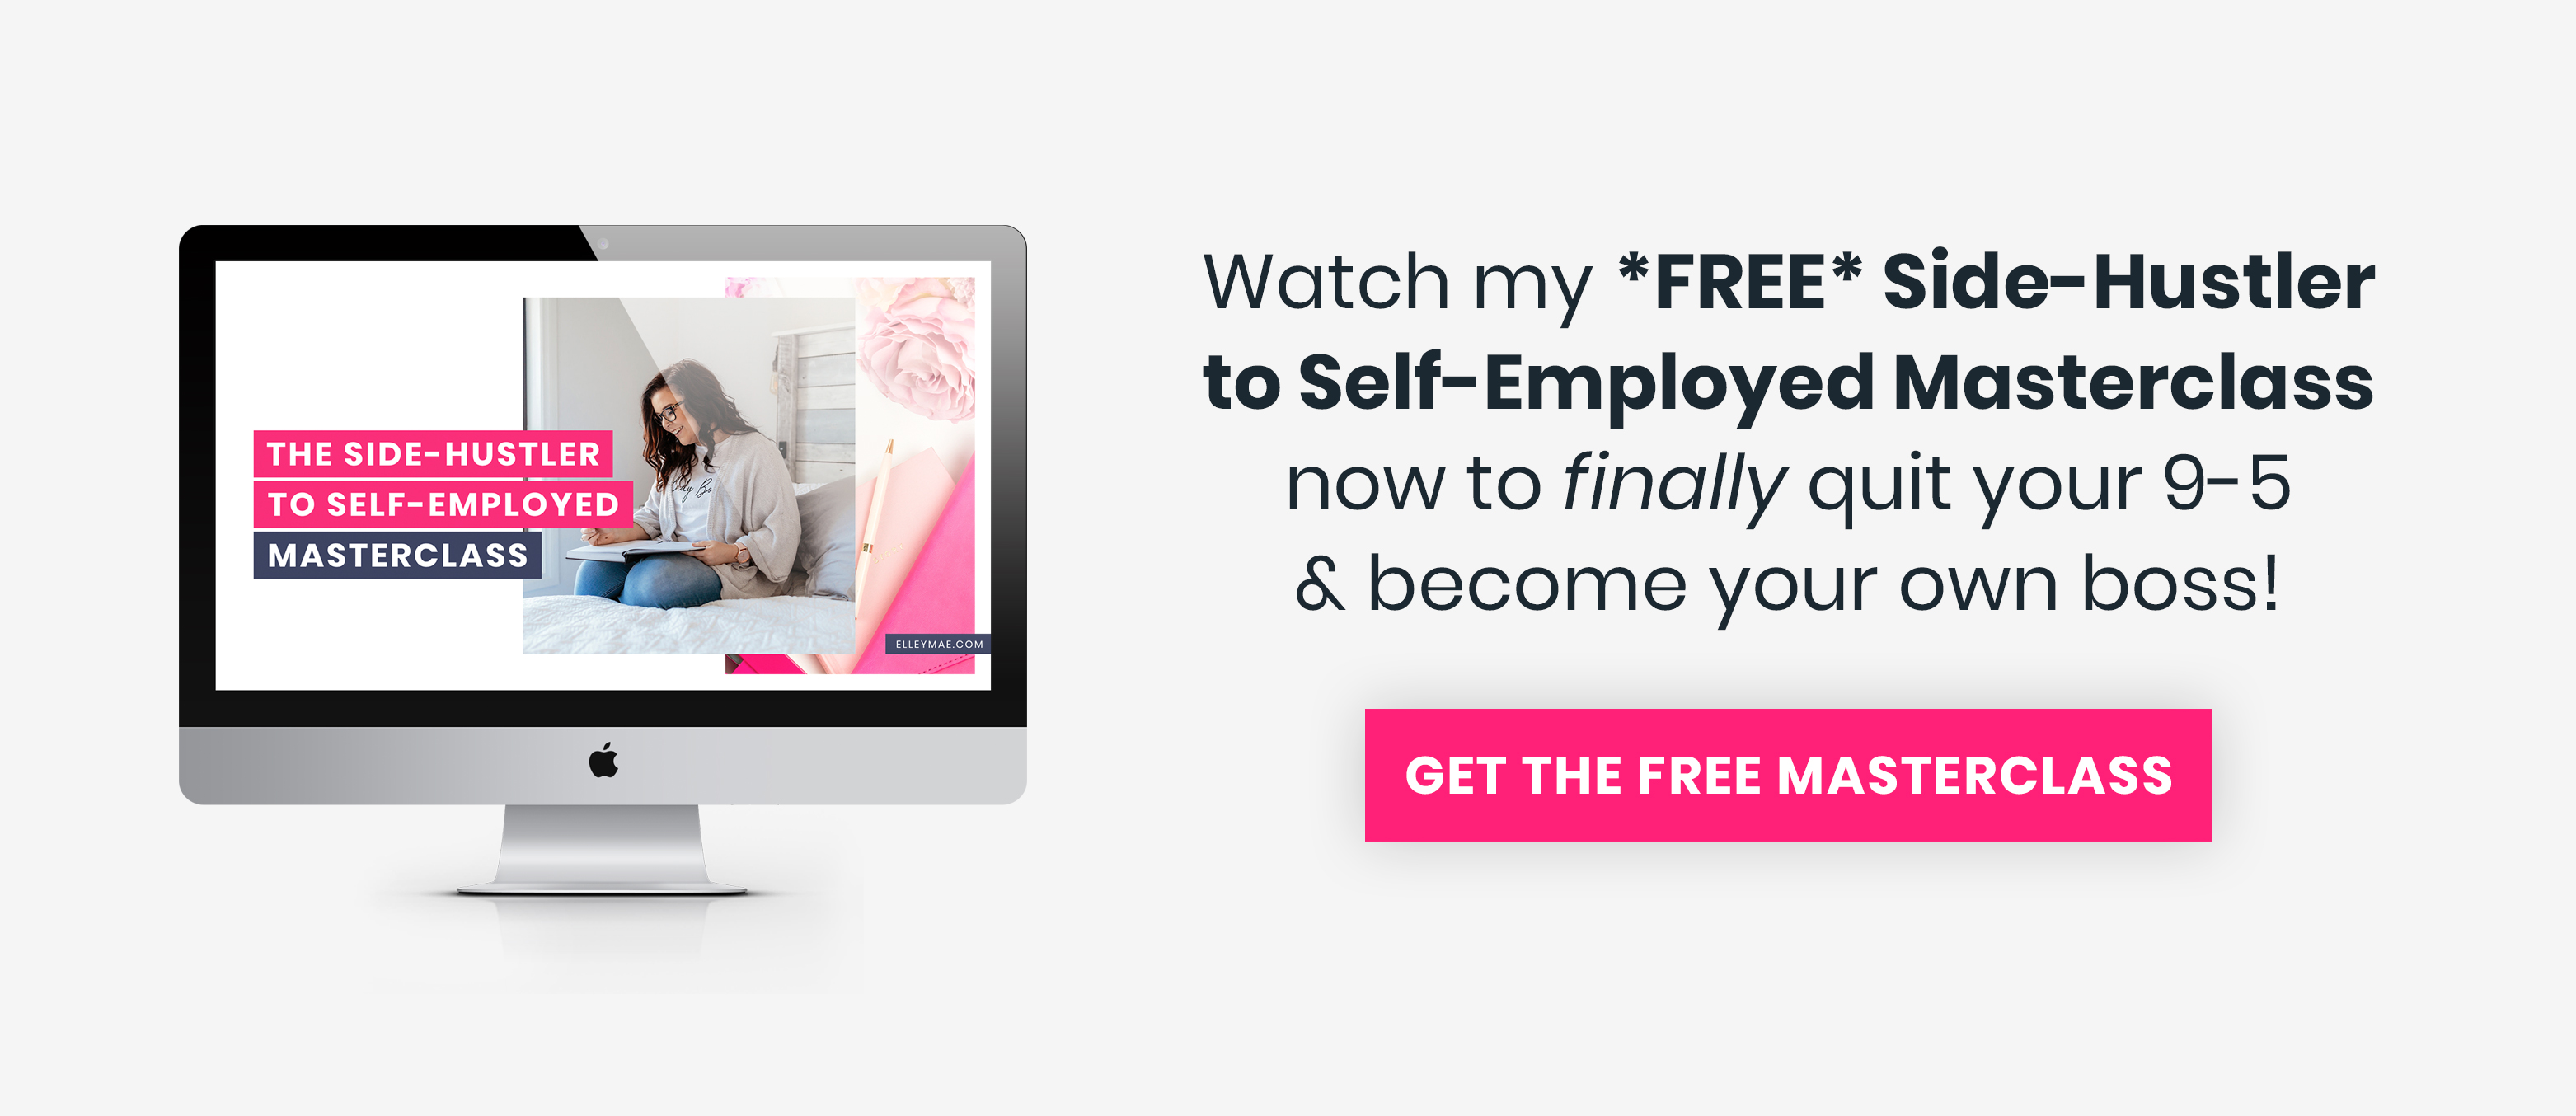 FREE MASTERCLASS | Are you ready to take your side-hustle full-time? Do you want to quit your 9-5 and work from home? Girl, I hear you! Watch my free Side-Hustler to Self-Employed Masterclass now to grow your business and *finally* quit your day job to pursue your passion! | Side-Hustle, Side Hustle, Side Hustle Jobs, Career, Female Entrepreneur, Work From Home, Quit Your Day Job, Side Hustle Australia, Passive Income, Coaching, Become A Coach, Be Your Own Boss | Elleymae.com